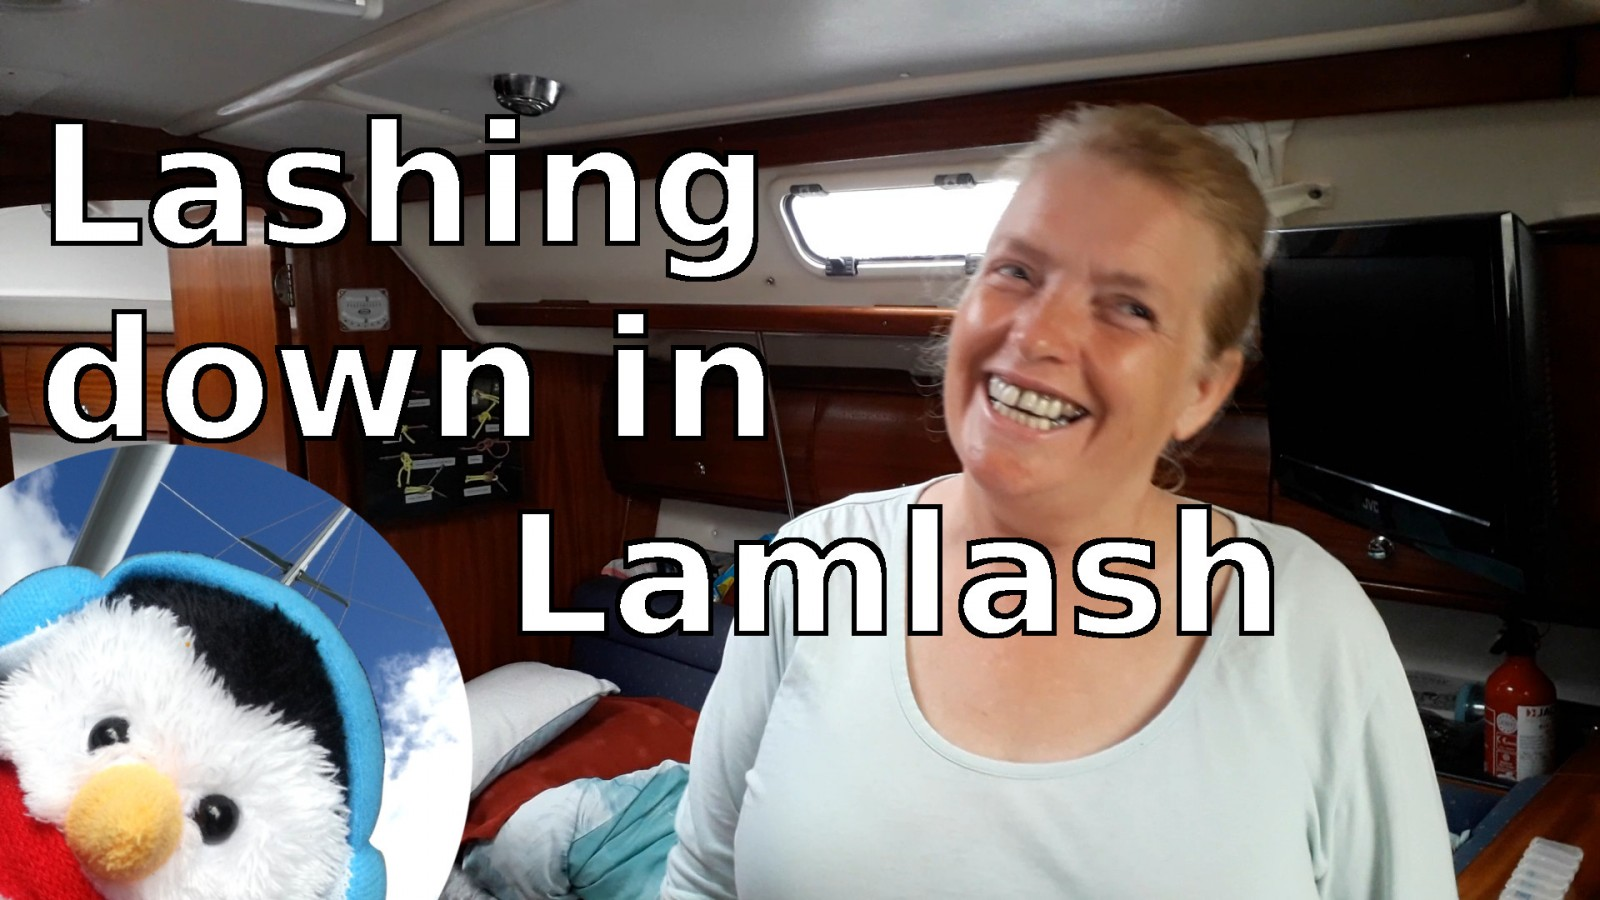 Watch our 'Lashing down in Lamlash' video and add comments etc.